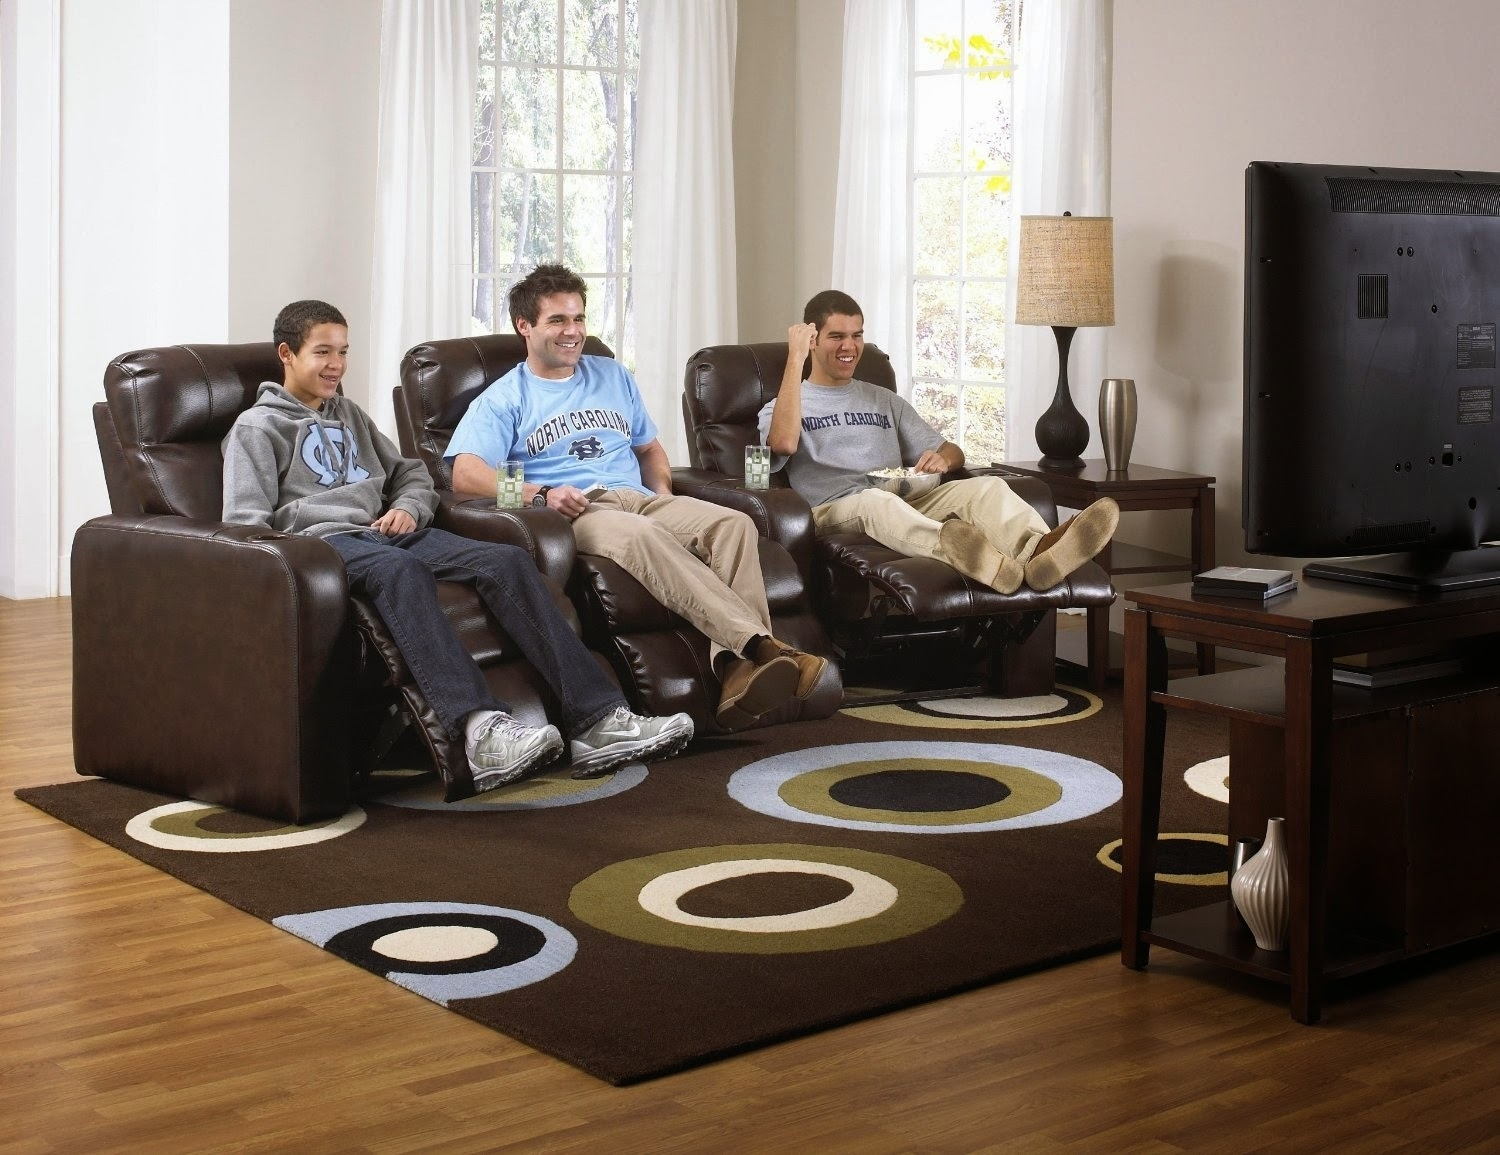 Cheap Reclining Loveseat Sale : Curved Leather Reclining Sofa And inside Curved Recliner Sofas (Image 3 of 10)